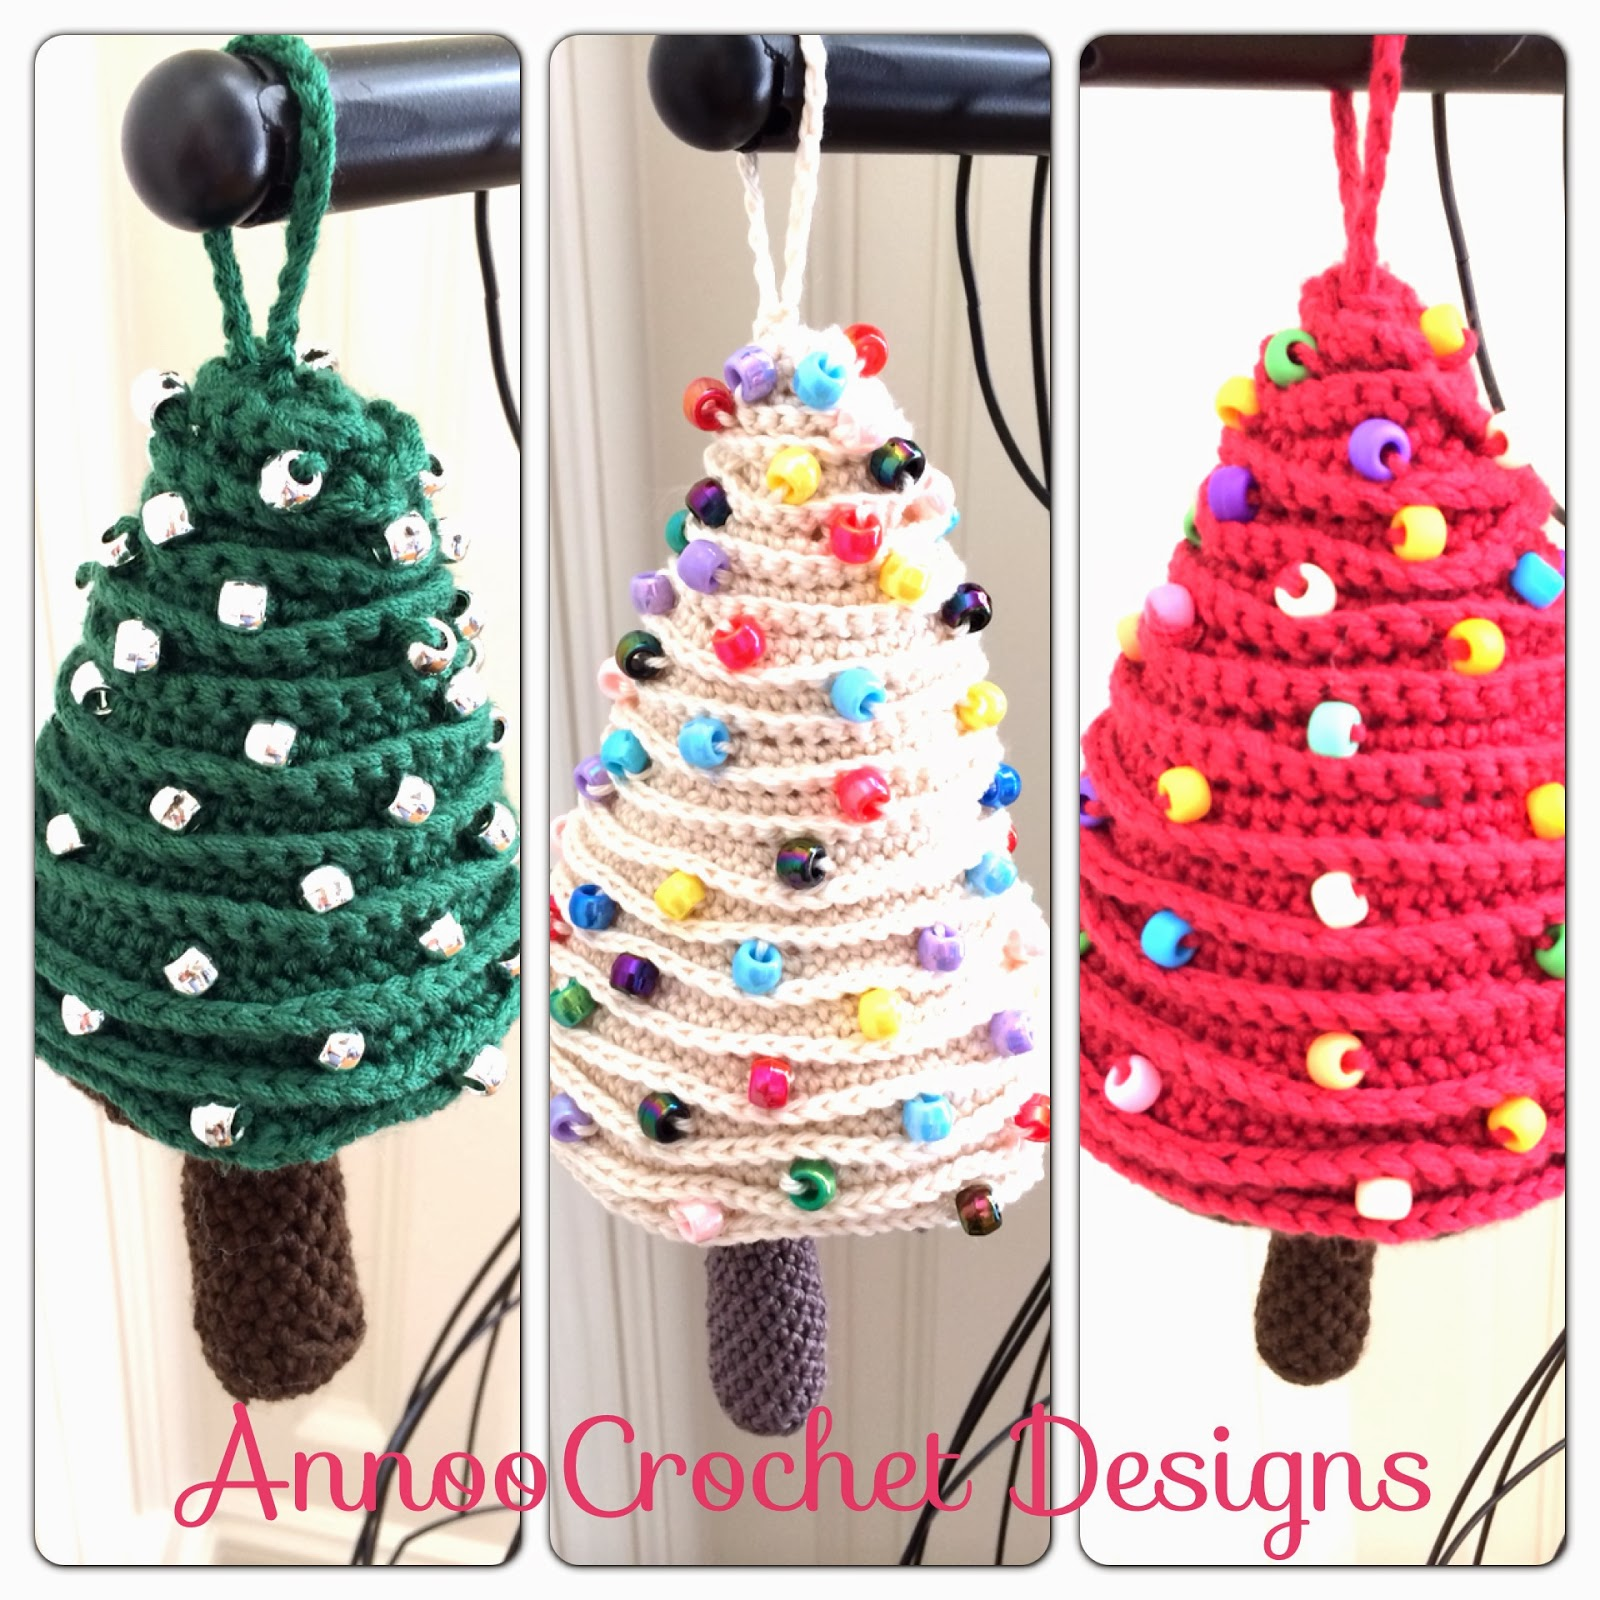 Crochet Decoration Patterns Crochet Christmas Tree Ornament Knitting Bee